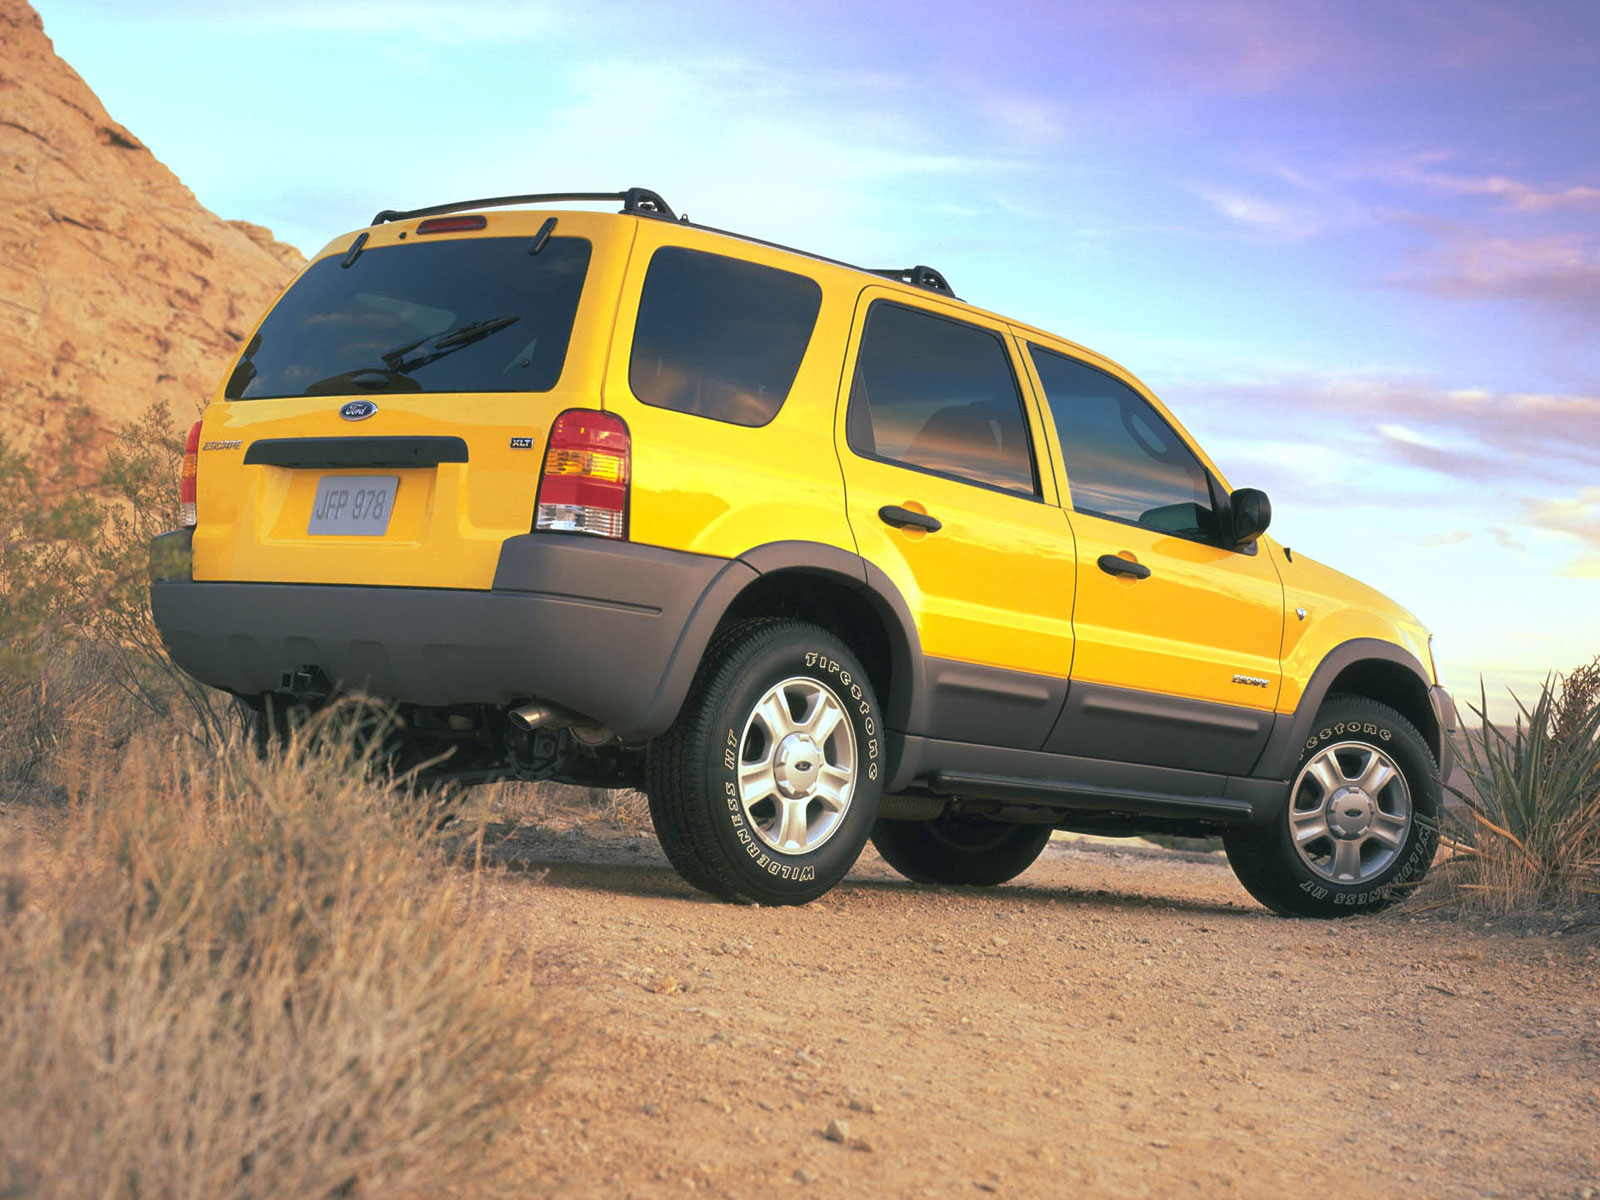 Ford escape 2000 photo - 7